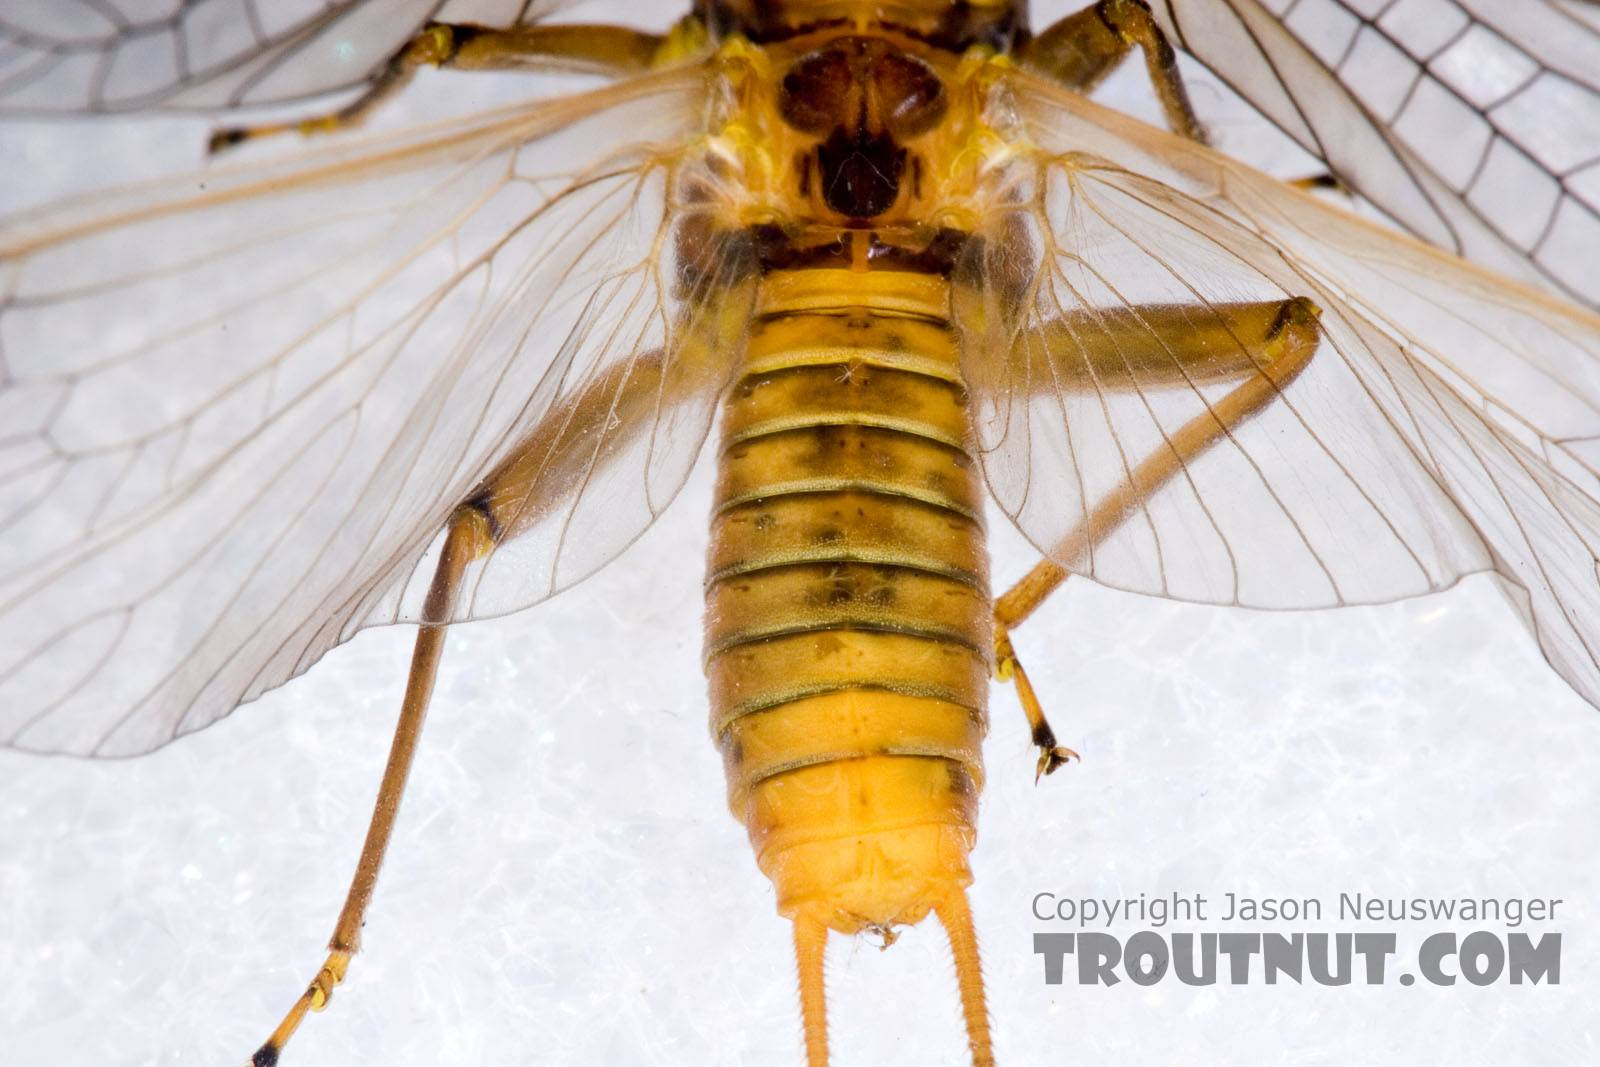 Female Acroneuria lycorias (Golden Stone) Stonefly Adult from Aquarium (collected somewhere in Catskills) in New York